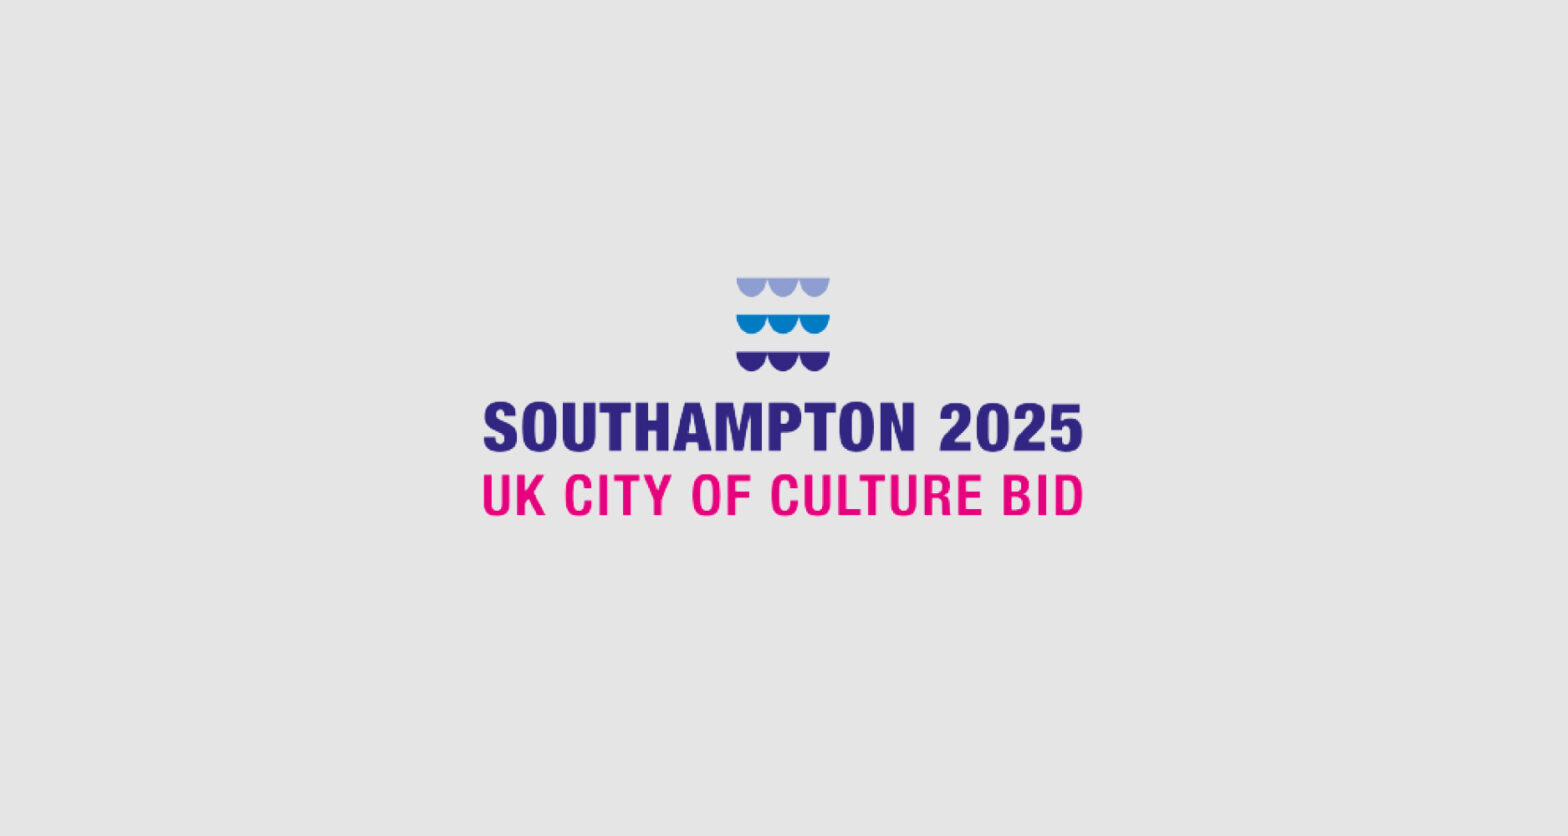 The Southampton City of Culture 2025 Bid Team has joined CWEIC as a new Strategic Partner